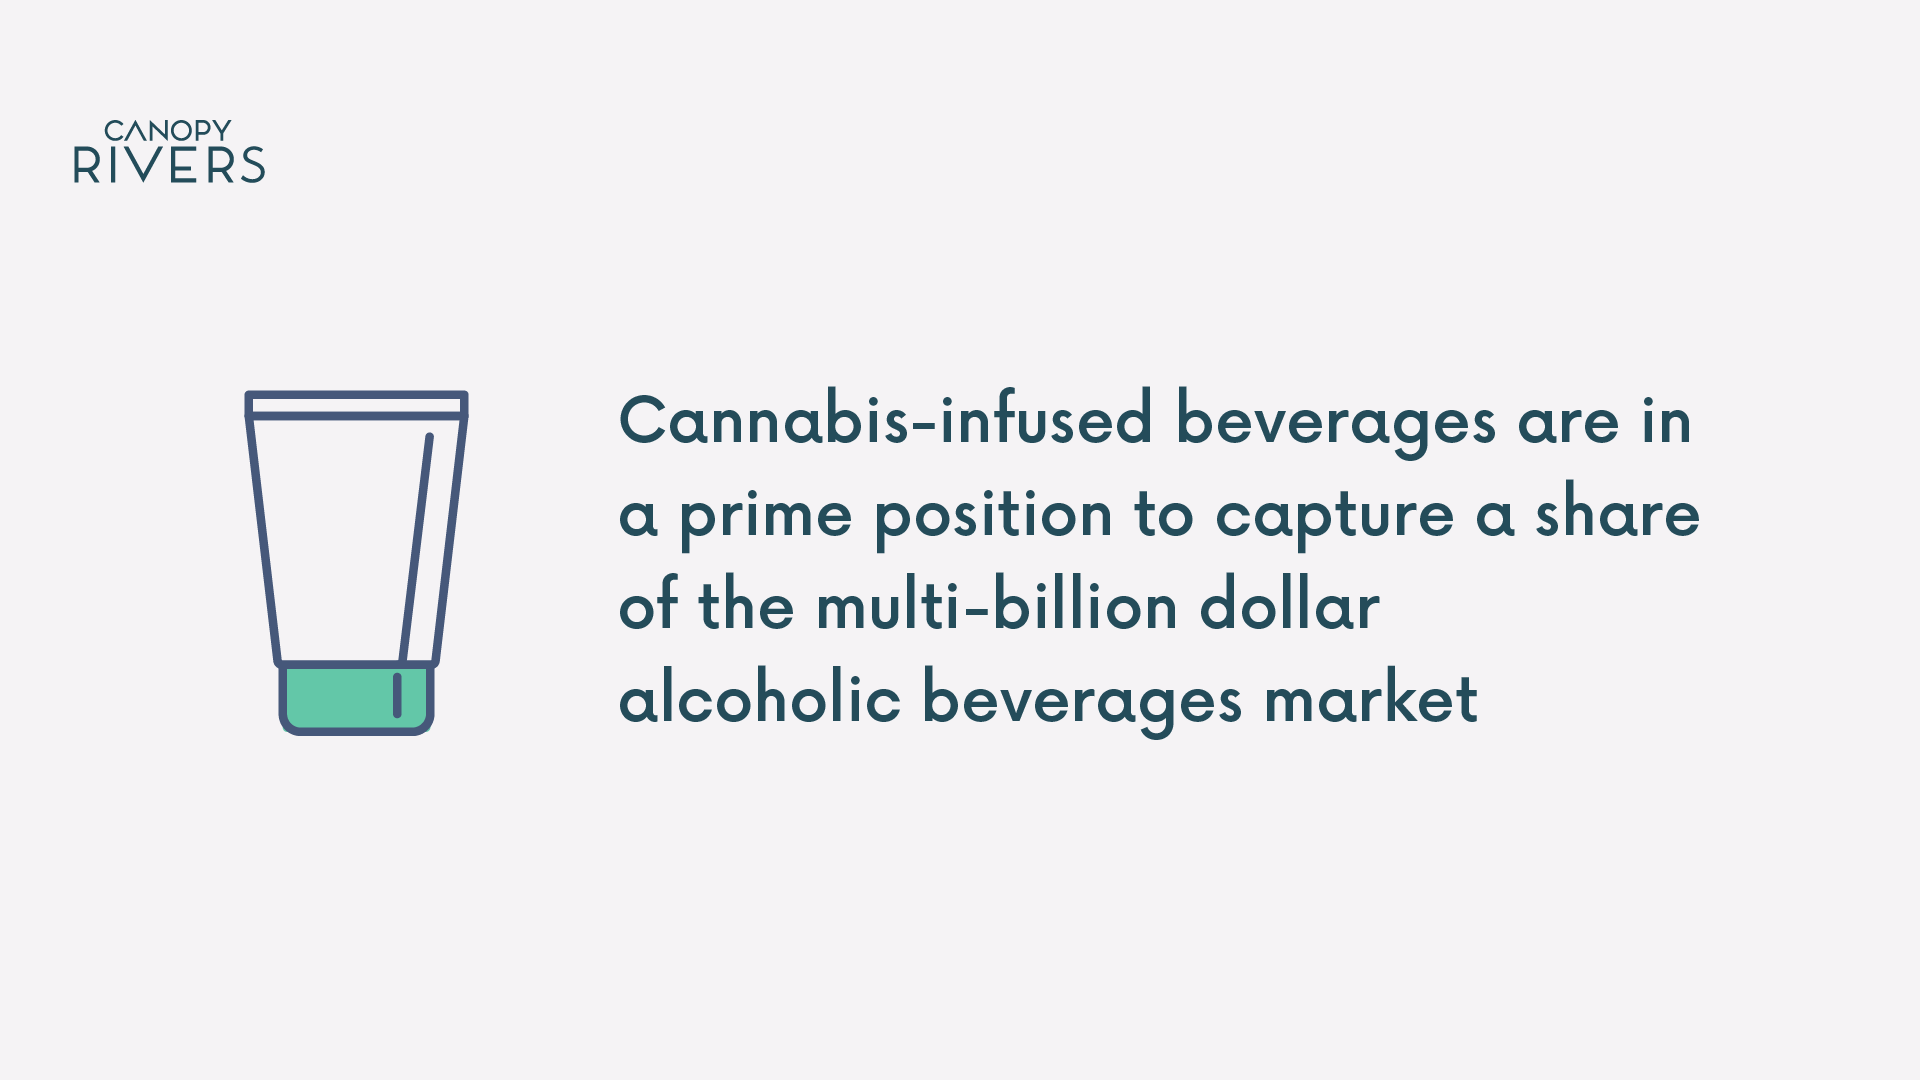 cannabis-infused-beverages-in-a-prime-position-to-capture-share-of-alcoholic-beverages-market-canopy-rivers.png